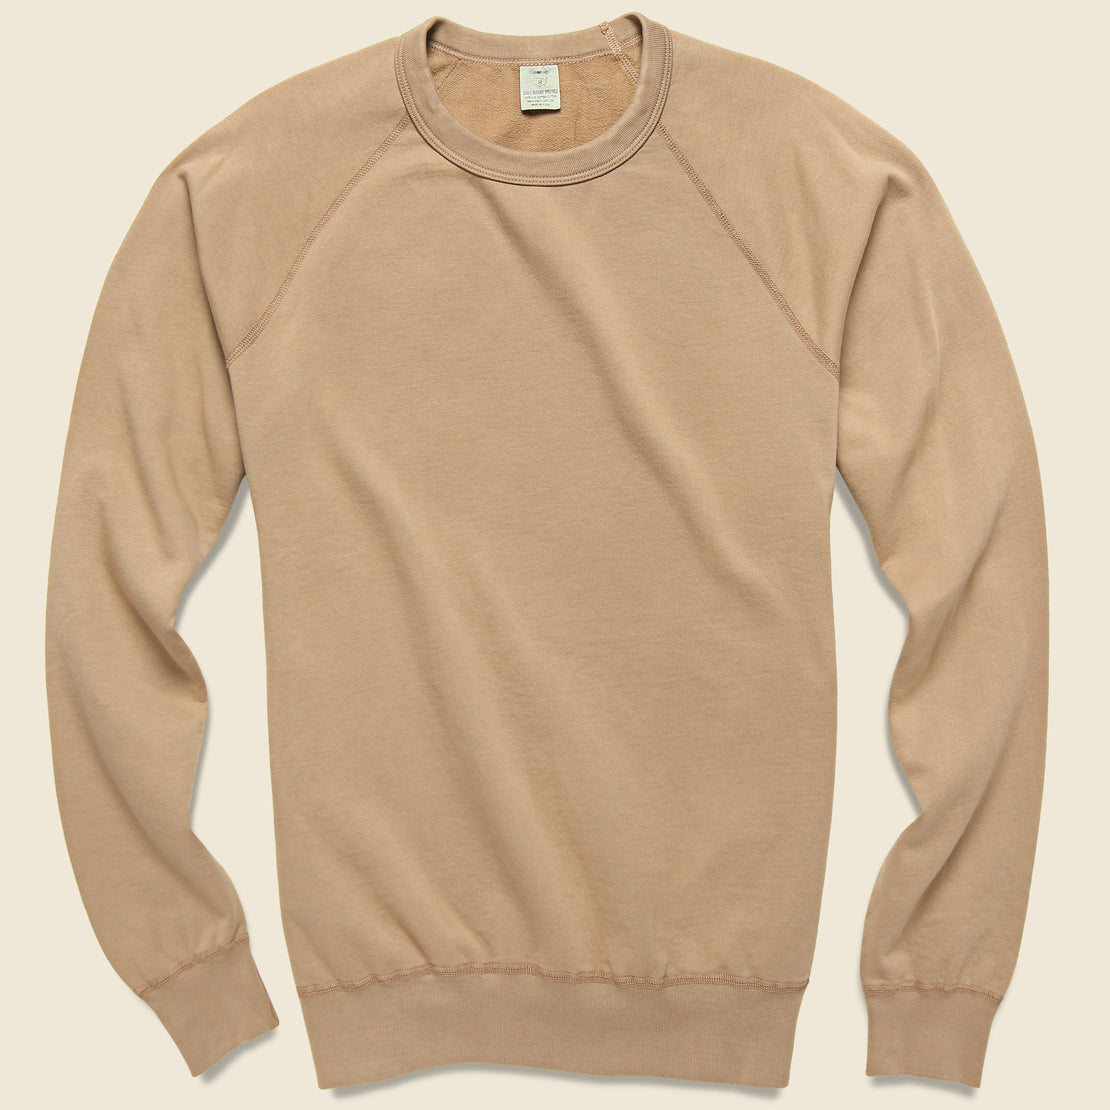 Save Khaki Supima Fleece Sweatshirt - Squash